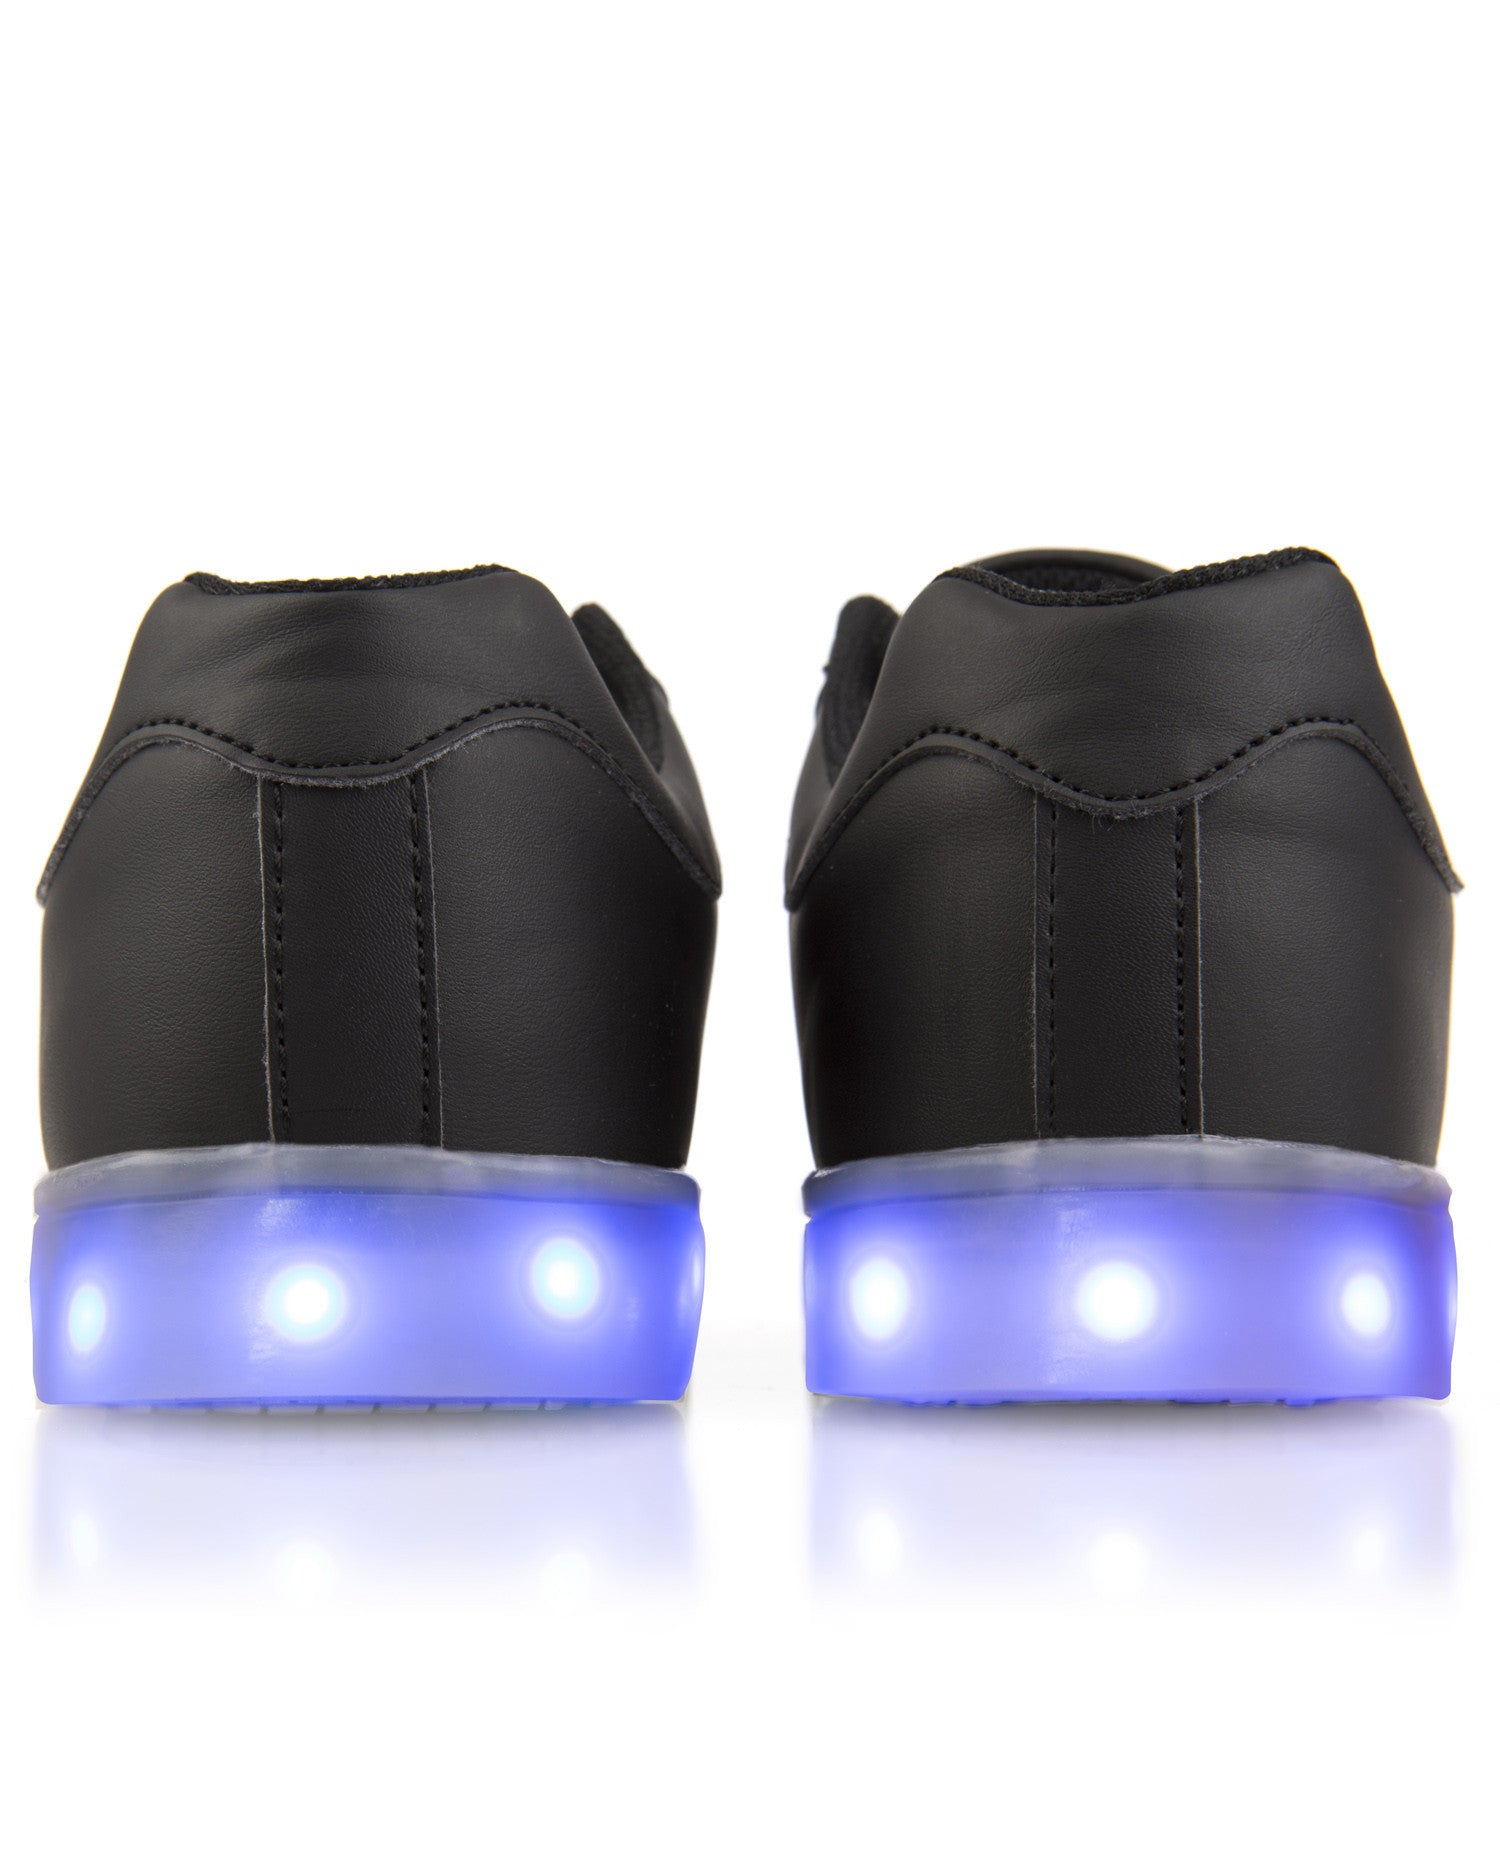 Electric Shoes - All Black - Electric Styles | World's Number 1 Light Up Shoe Store - {product_type}} -  - 3